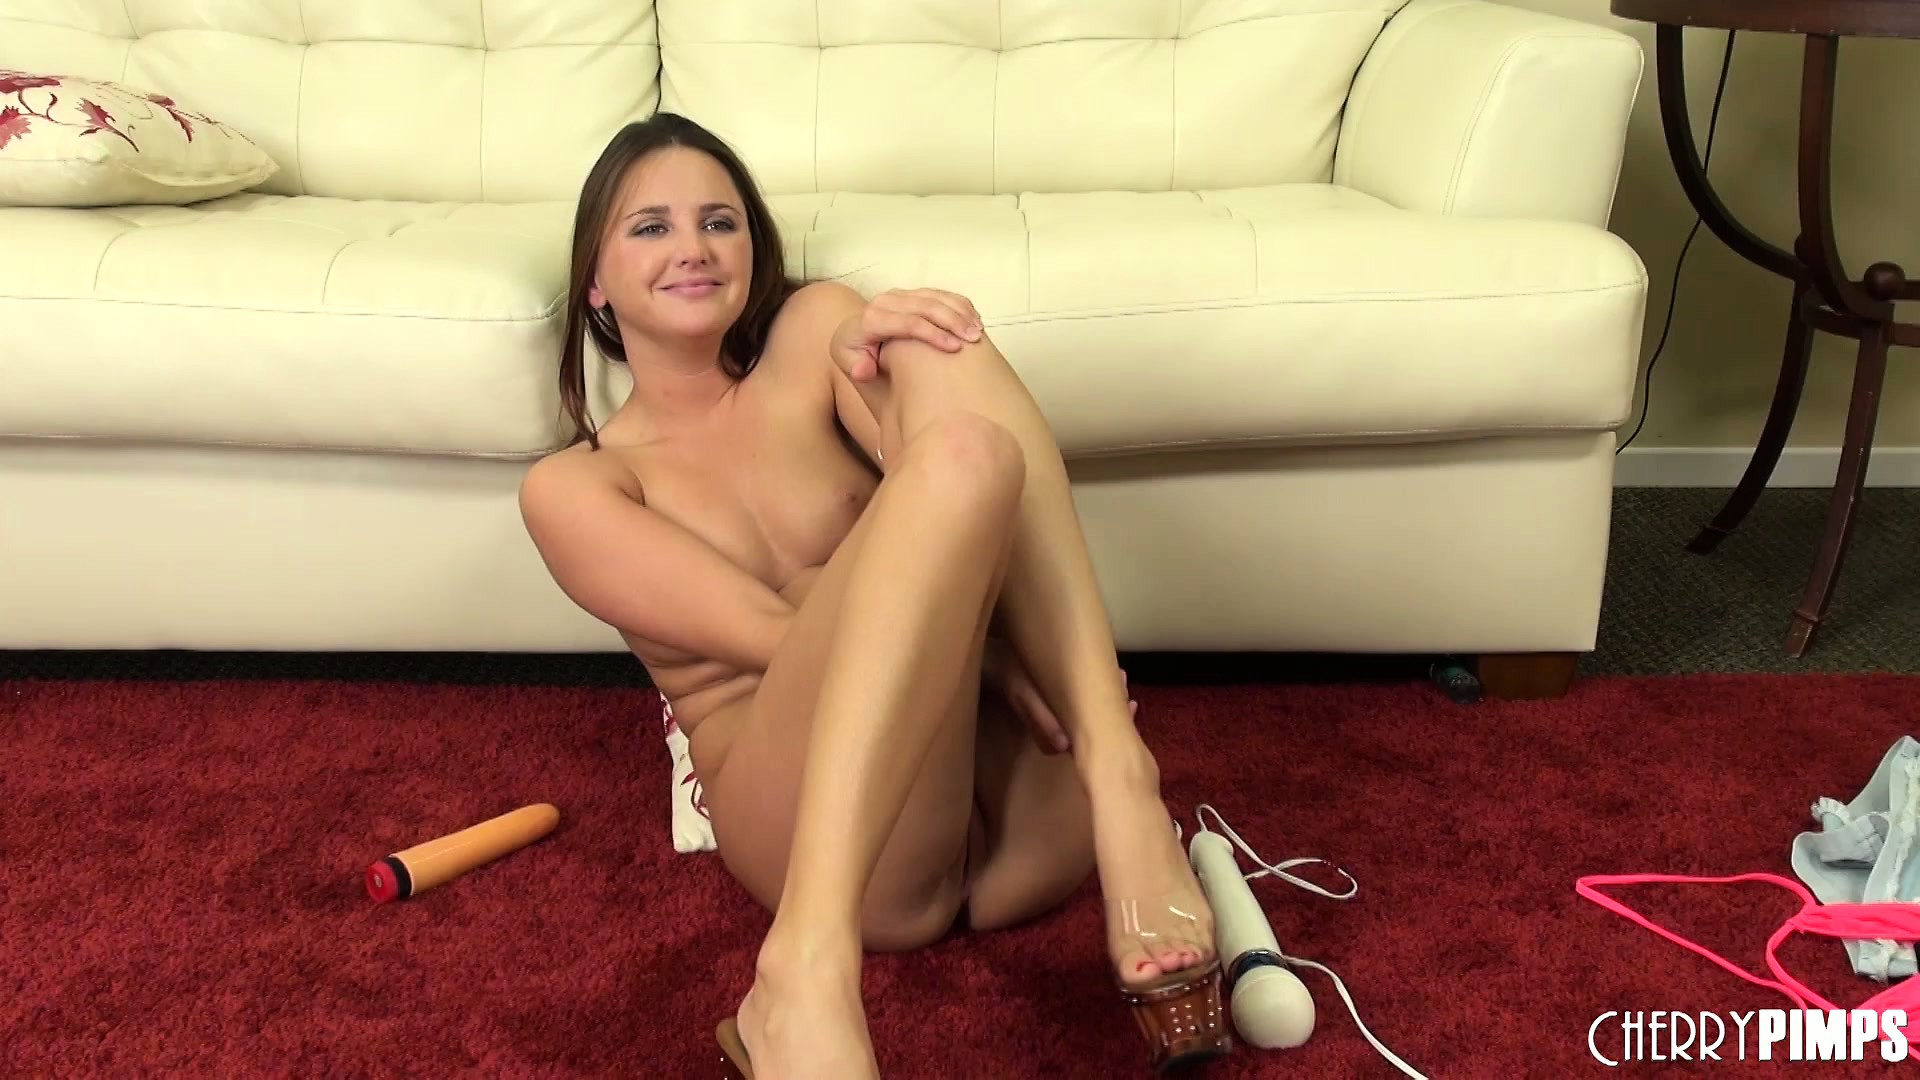 Porn Tube of Hope Sits On The Dildo Showing Her Hot Ass, Then Vibrates Her Clit